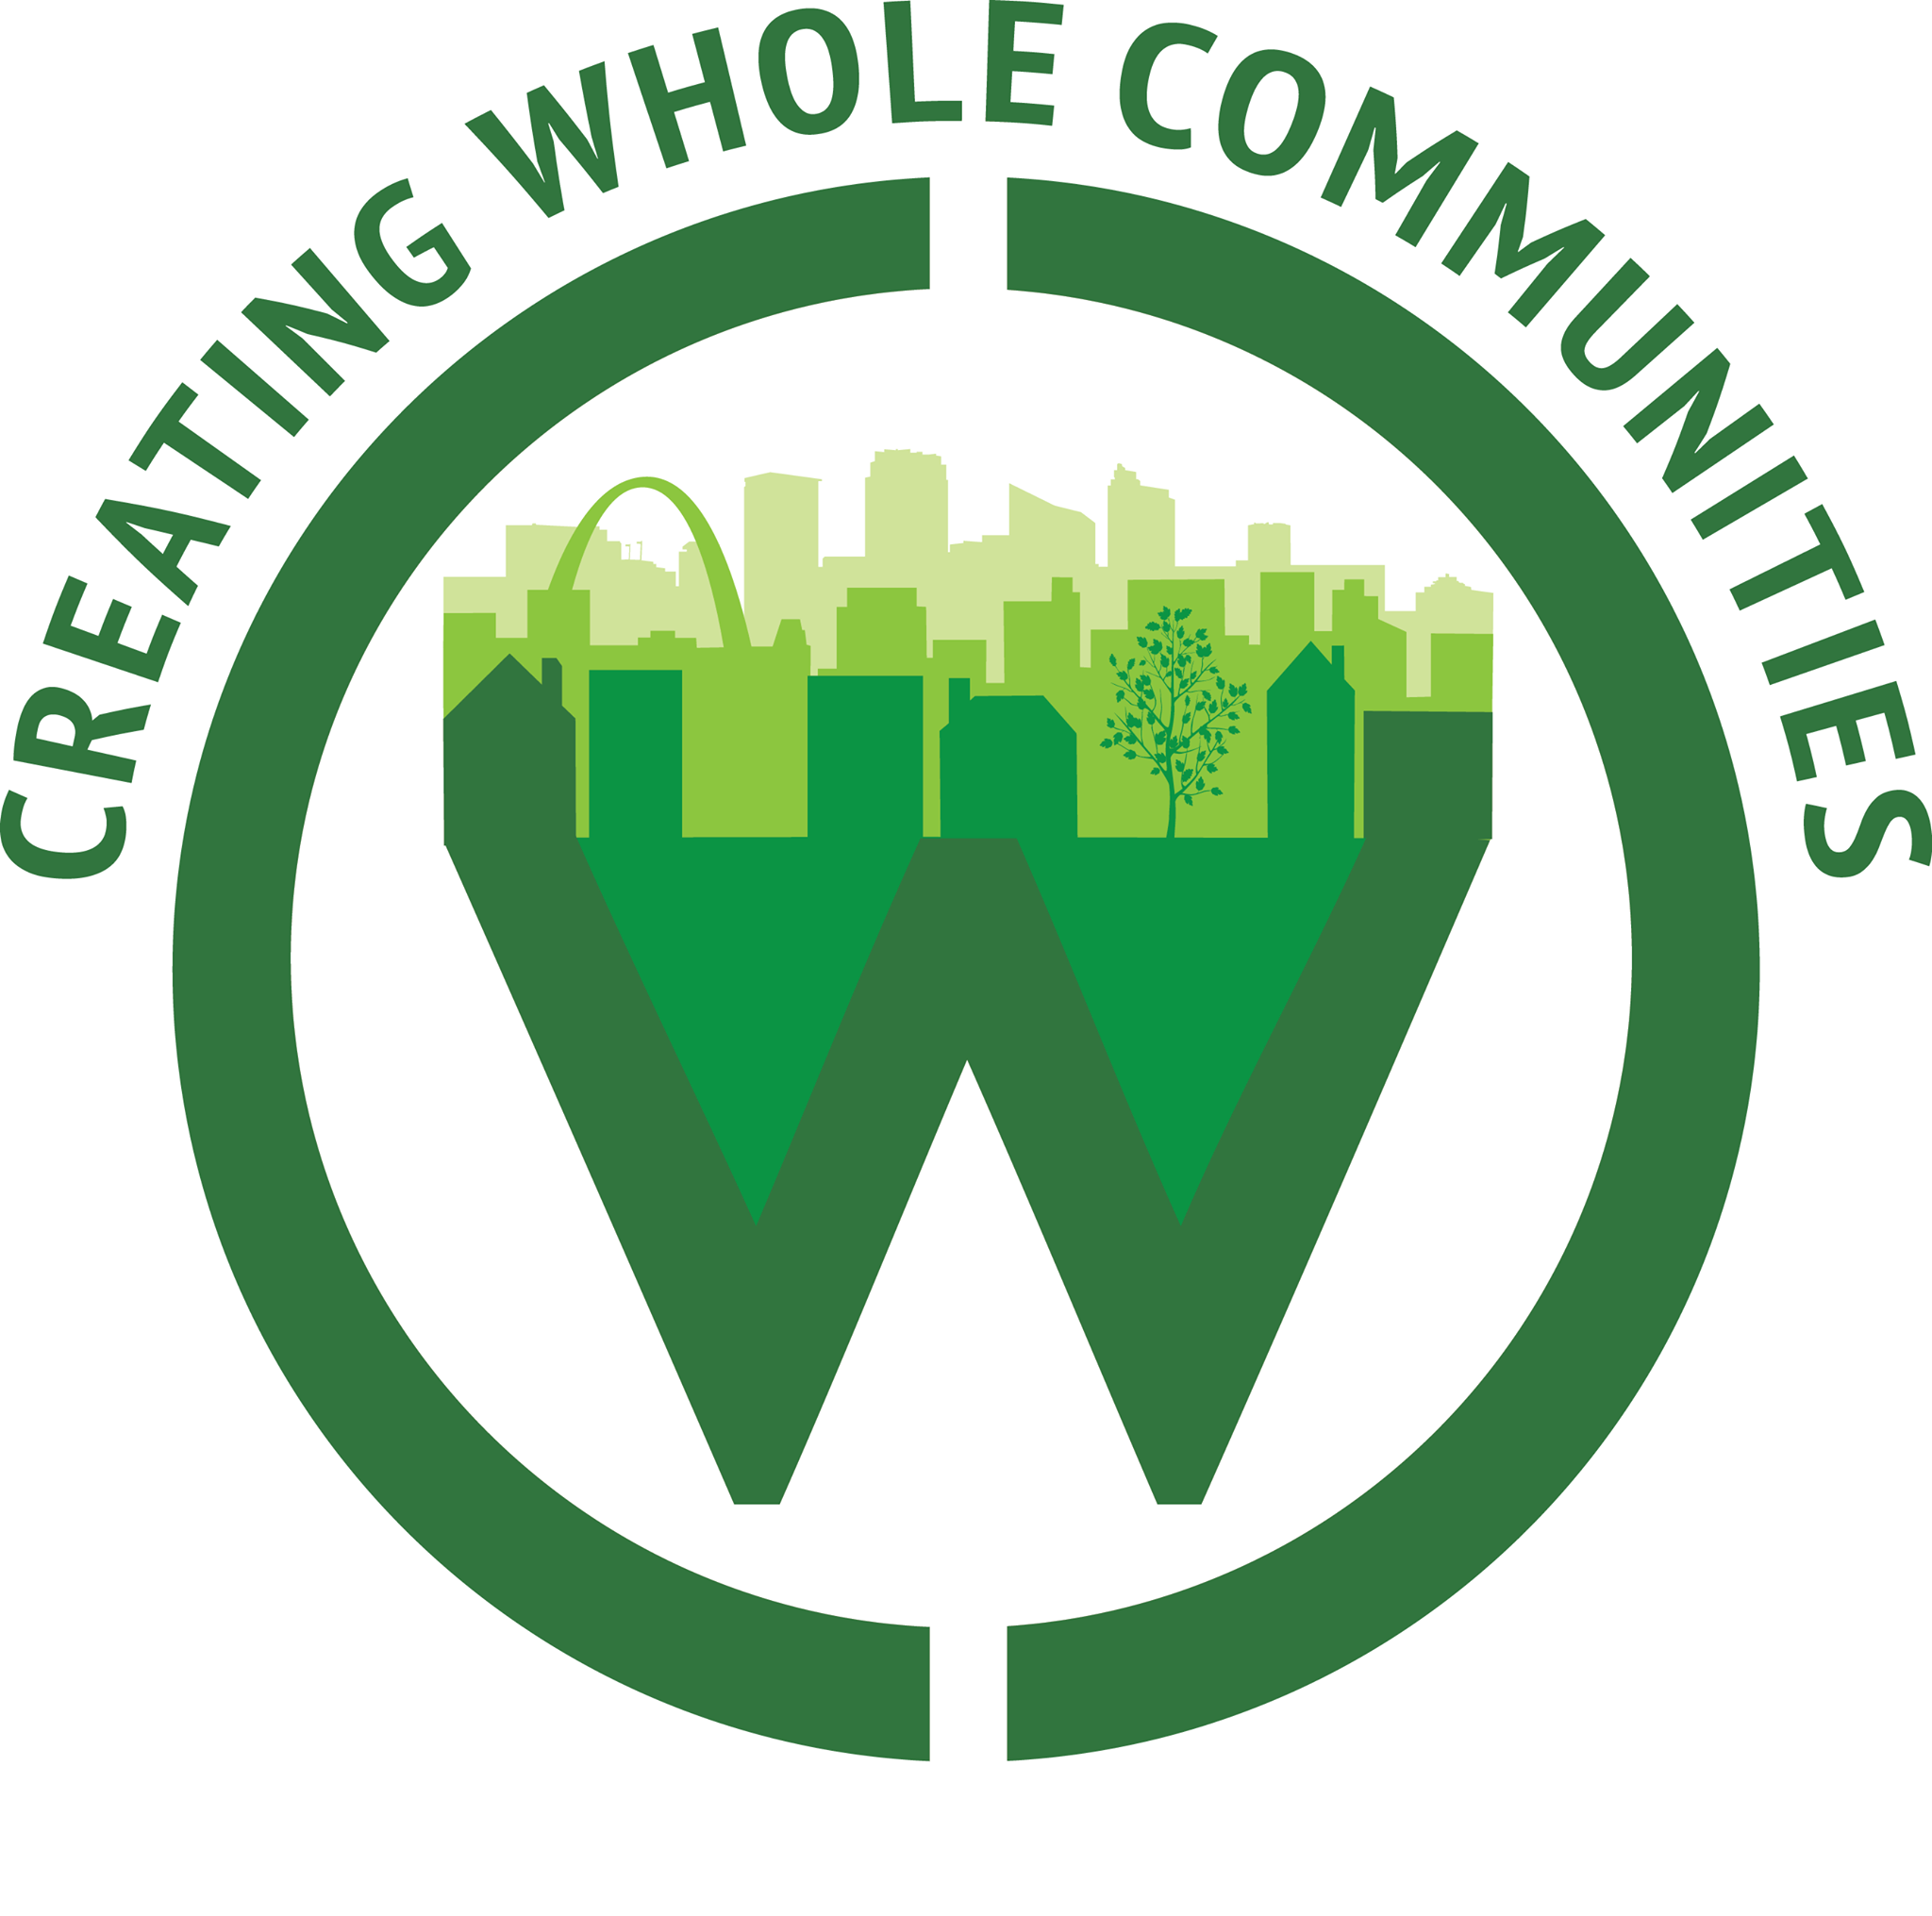 Creating Whole Communities